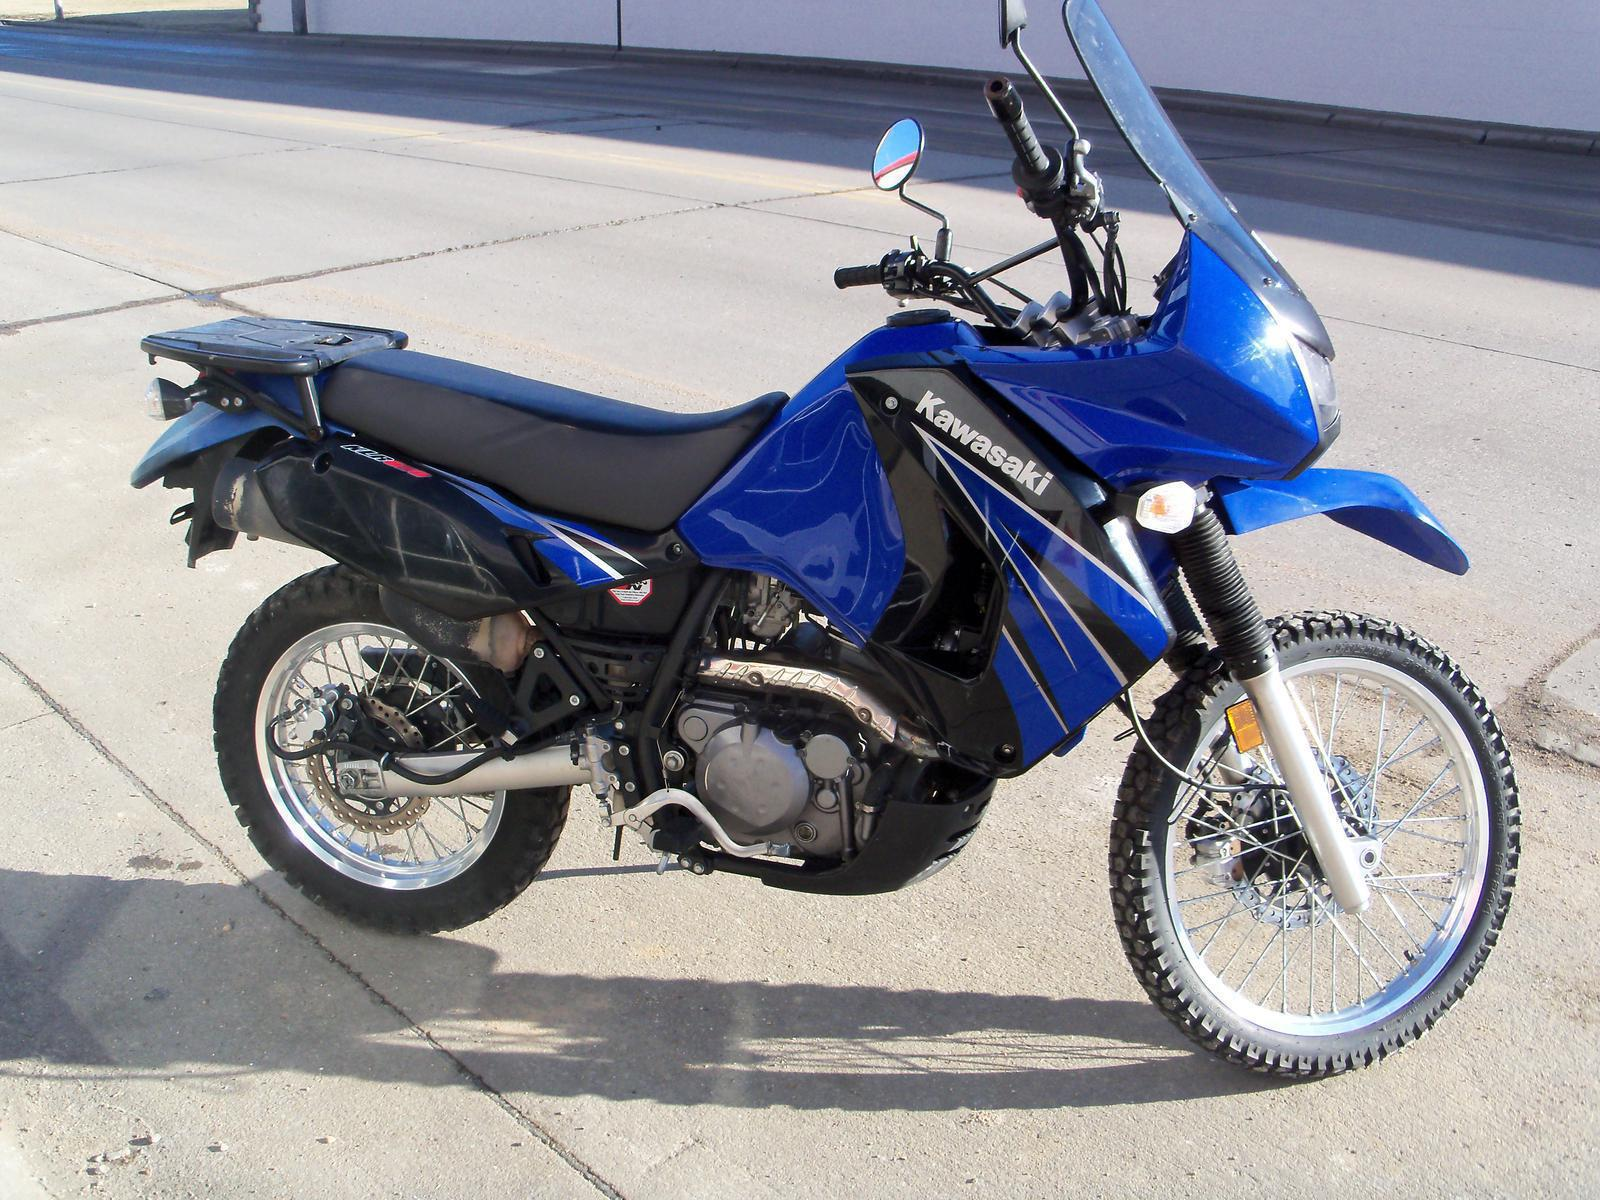 2009 Kawasaki KLR™650 for sale in Pittsburg, KS. Smith's Cycle ...